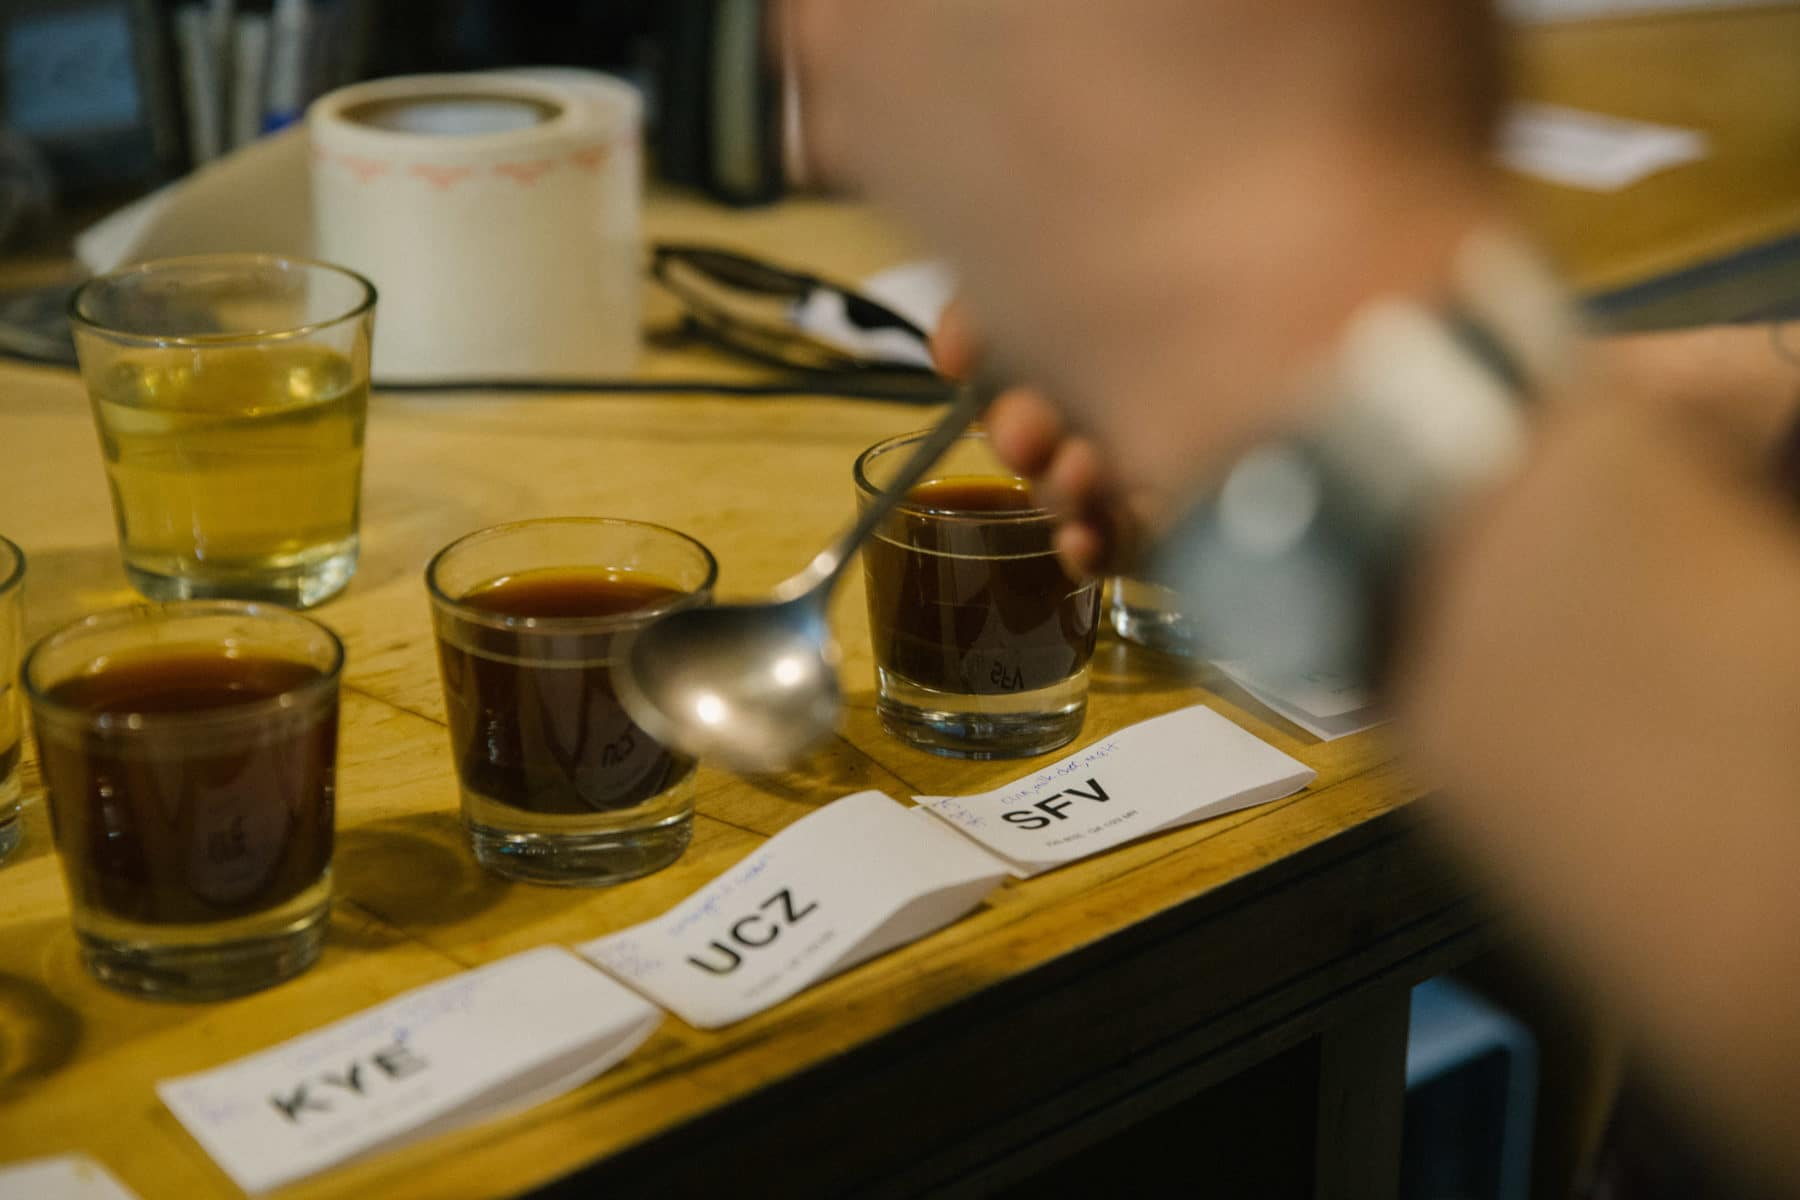 Cupping is a certified, worldwide method for evaluating coffee.